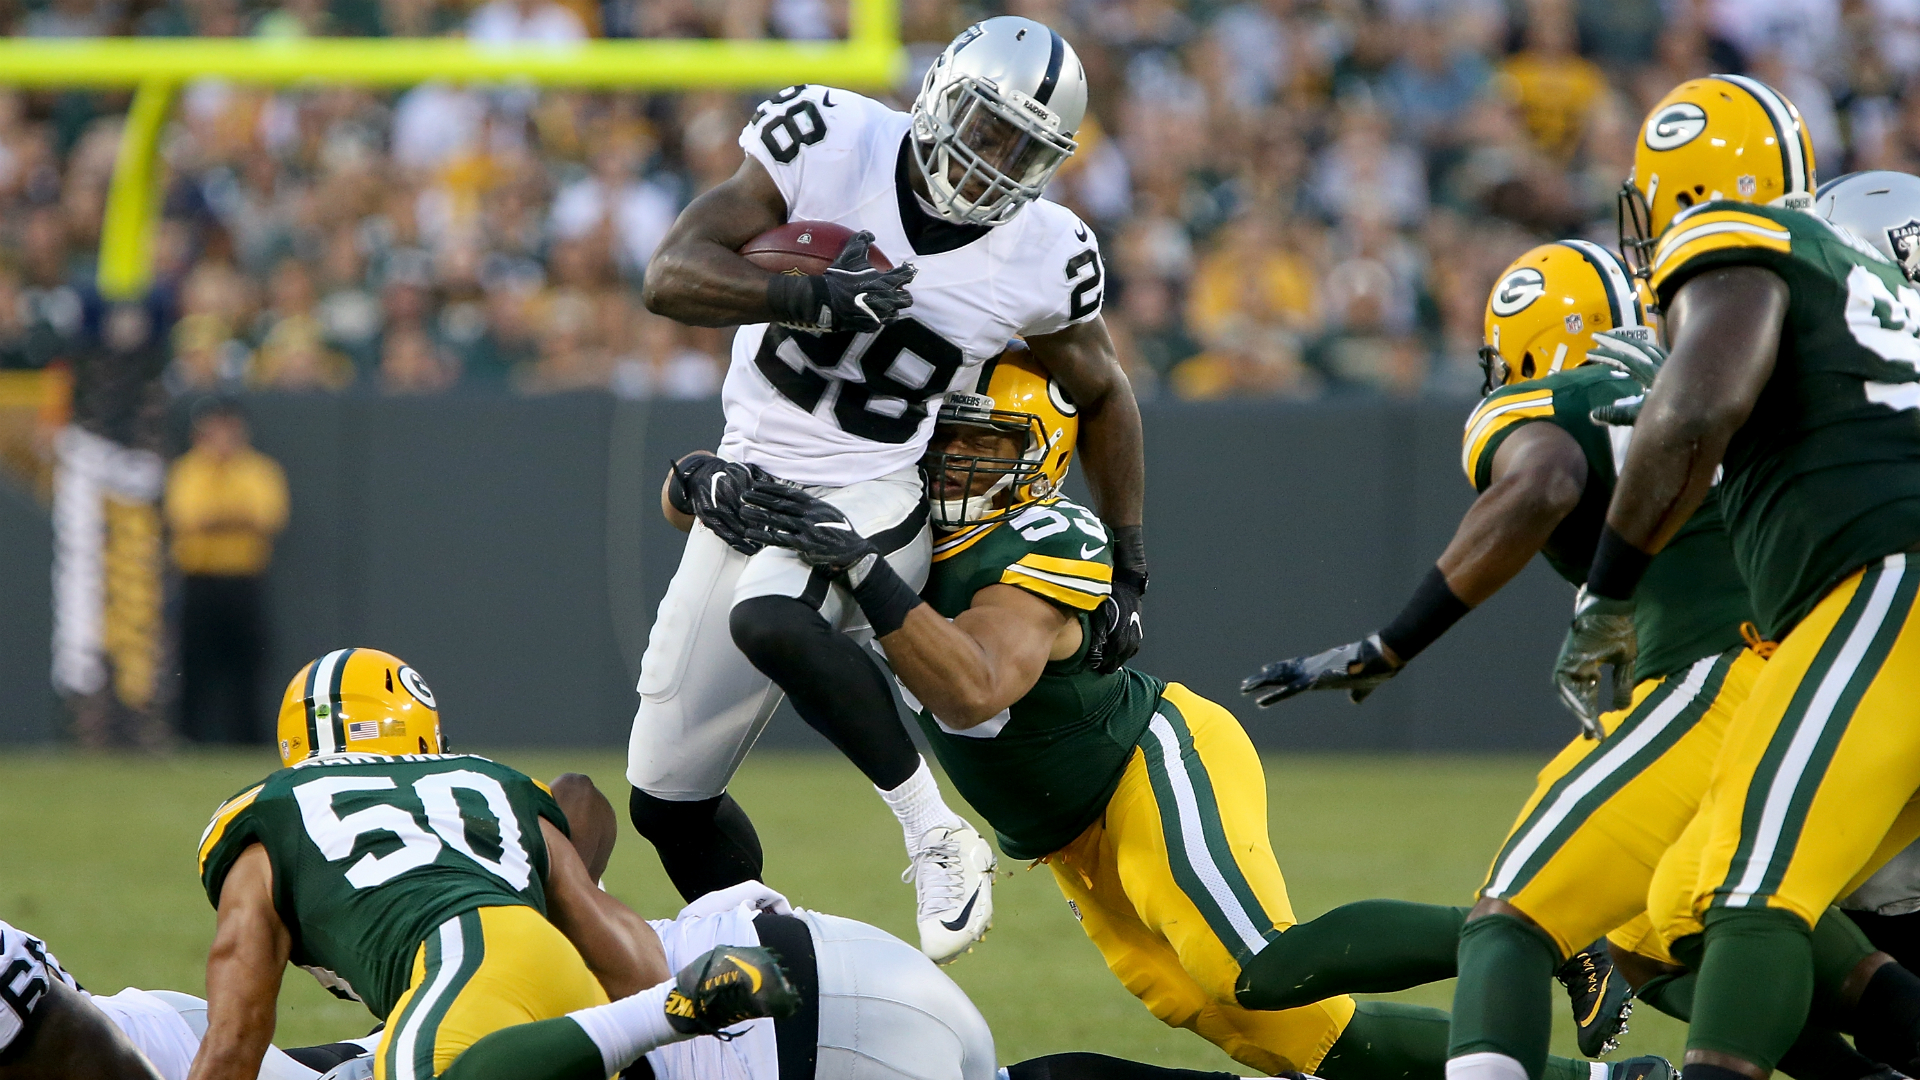 How to watch Packers vs. Raiders in Winnipeg: Time, schedule for 2019 NFL preseason in Canada